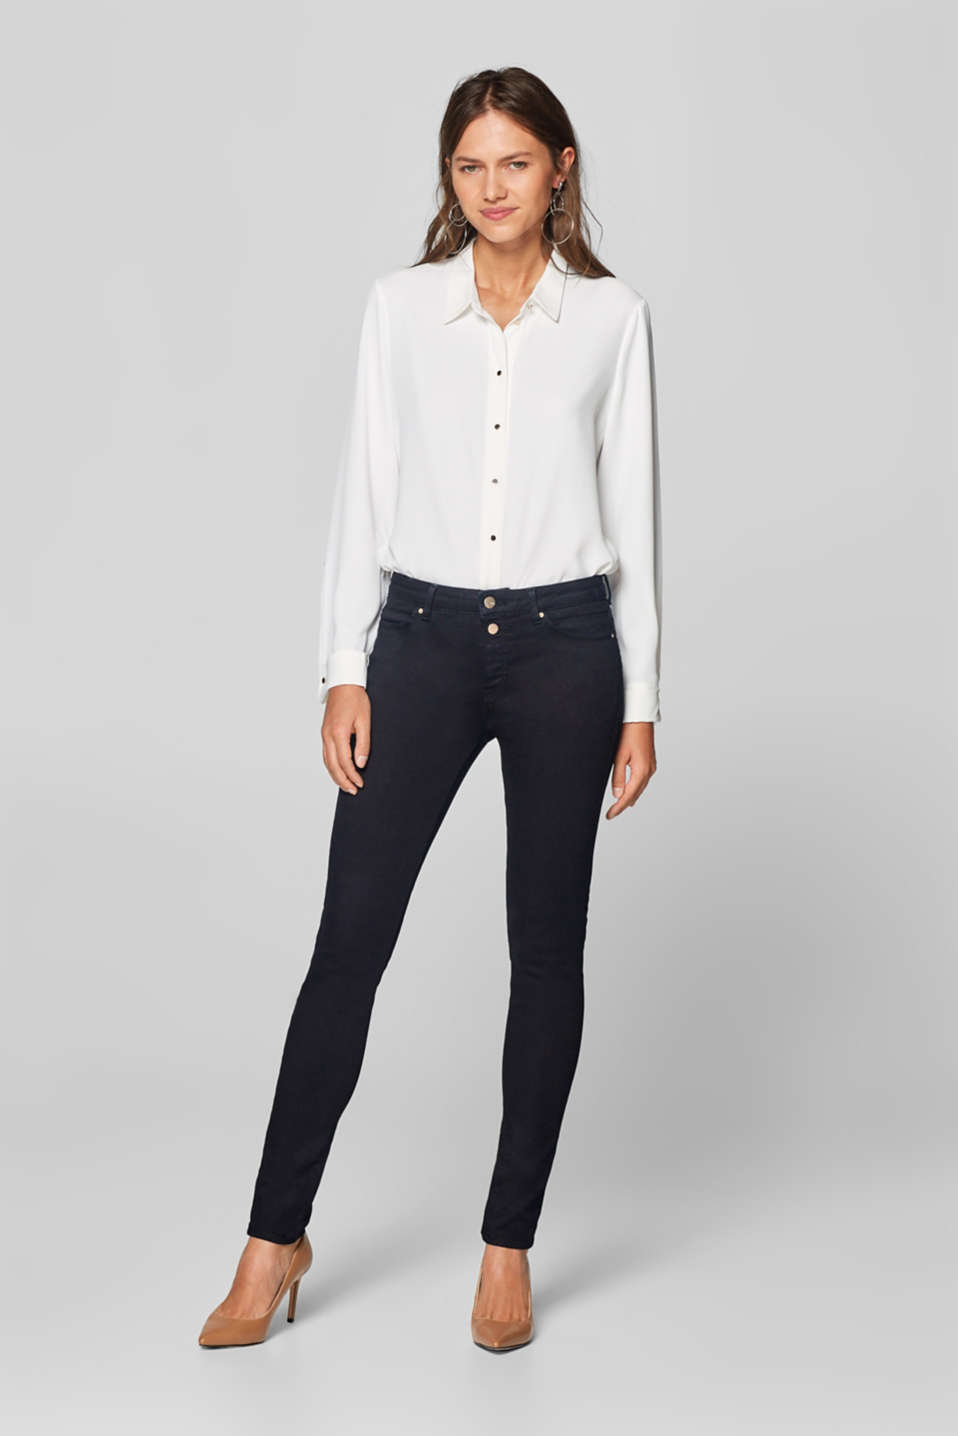 Esprit - Shaping jeans with partially concealed button placket